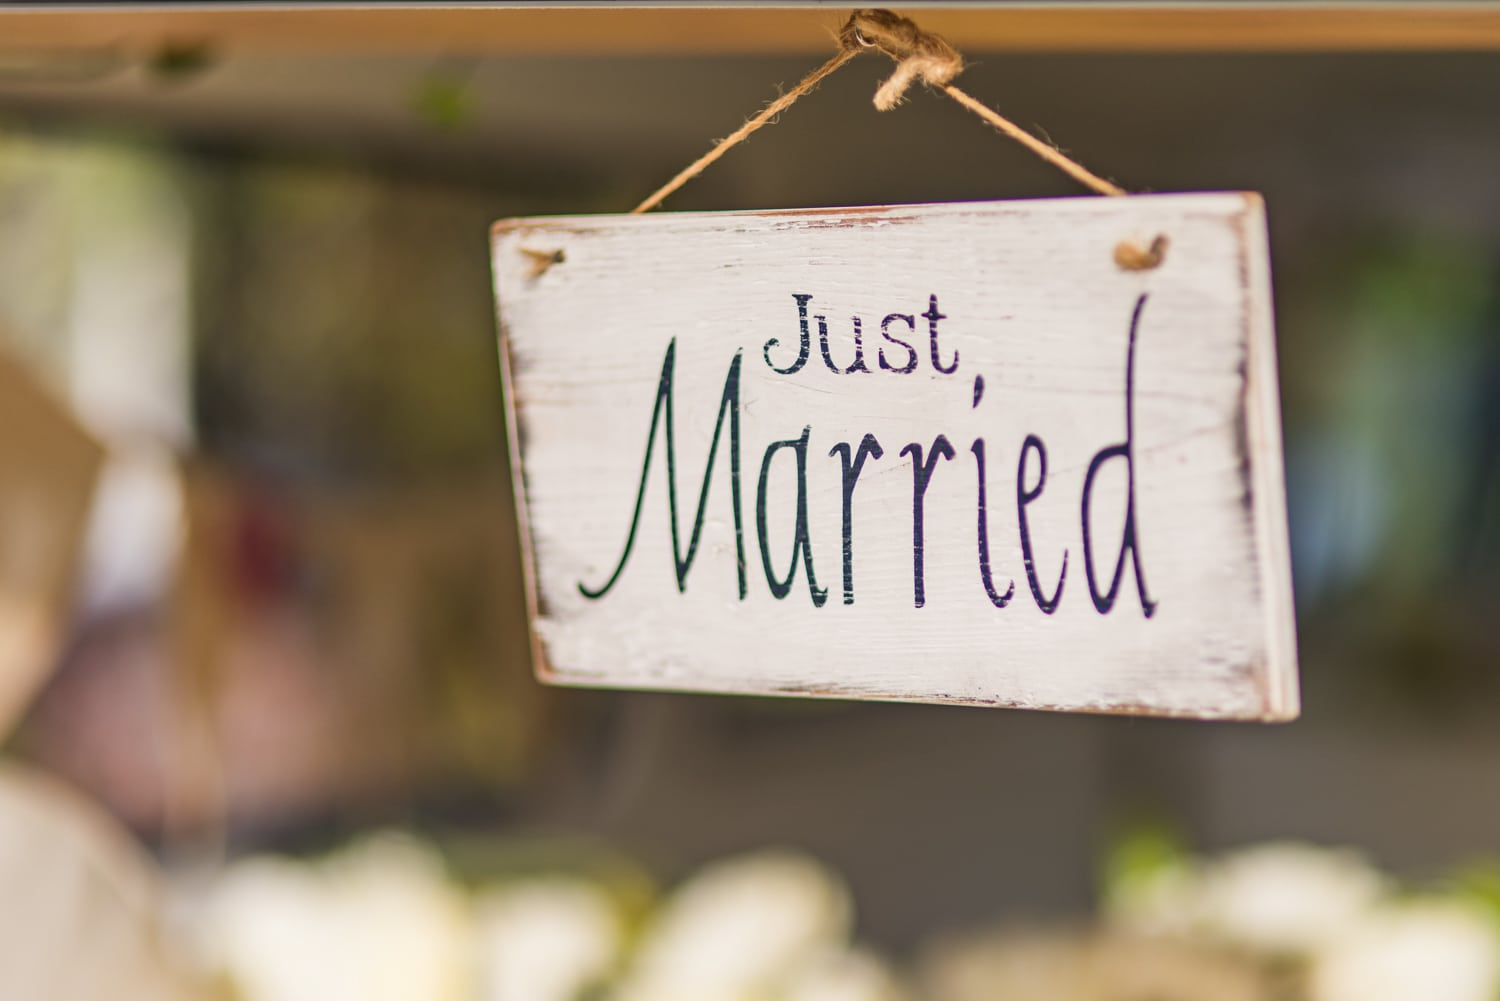 071-just-married-sign.jpg